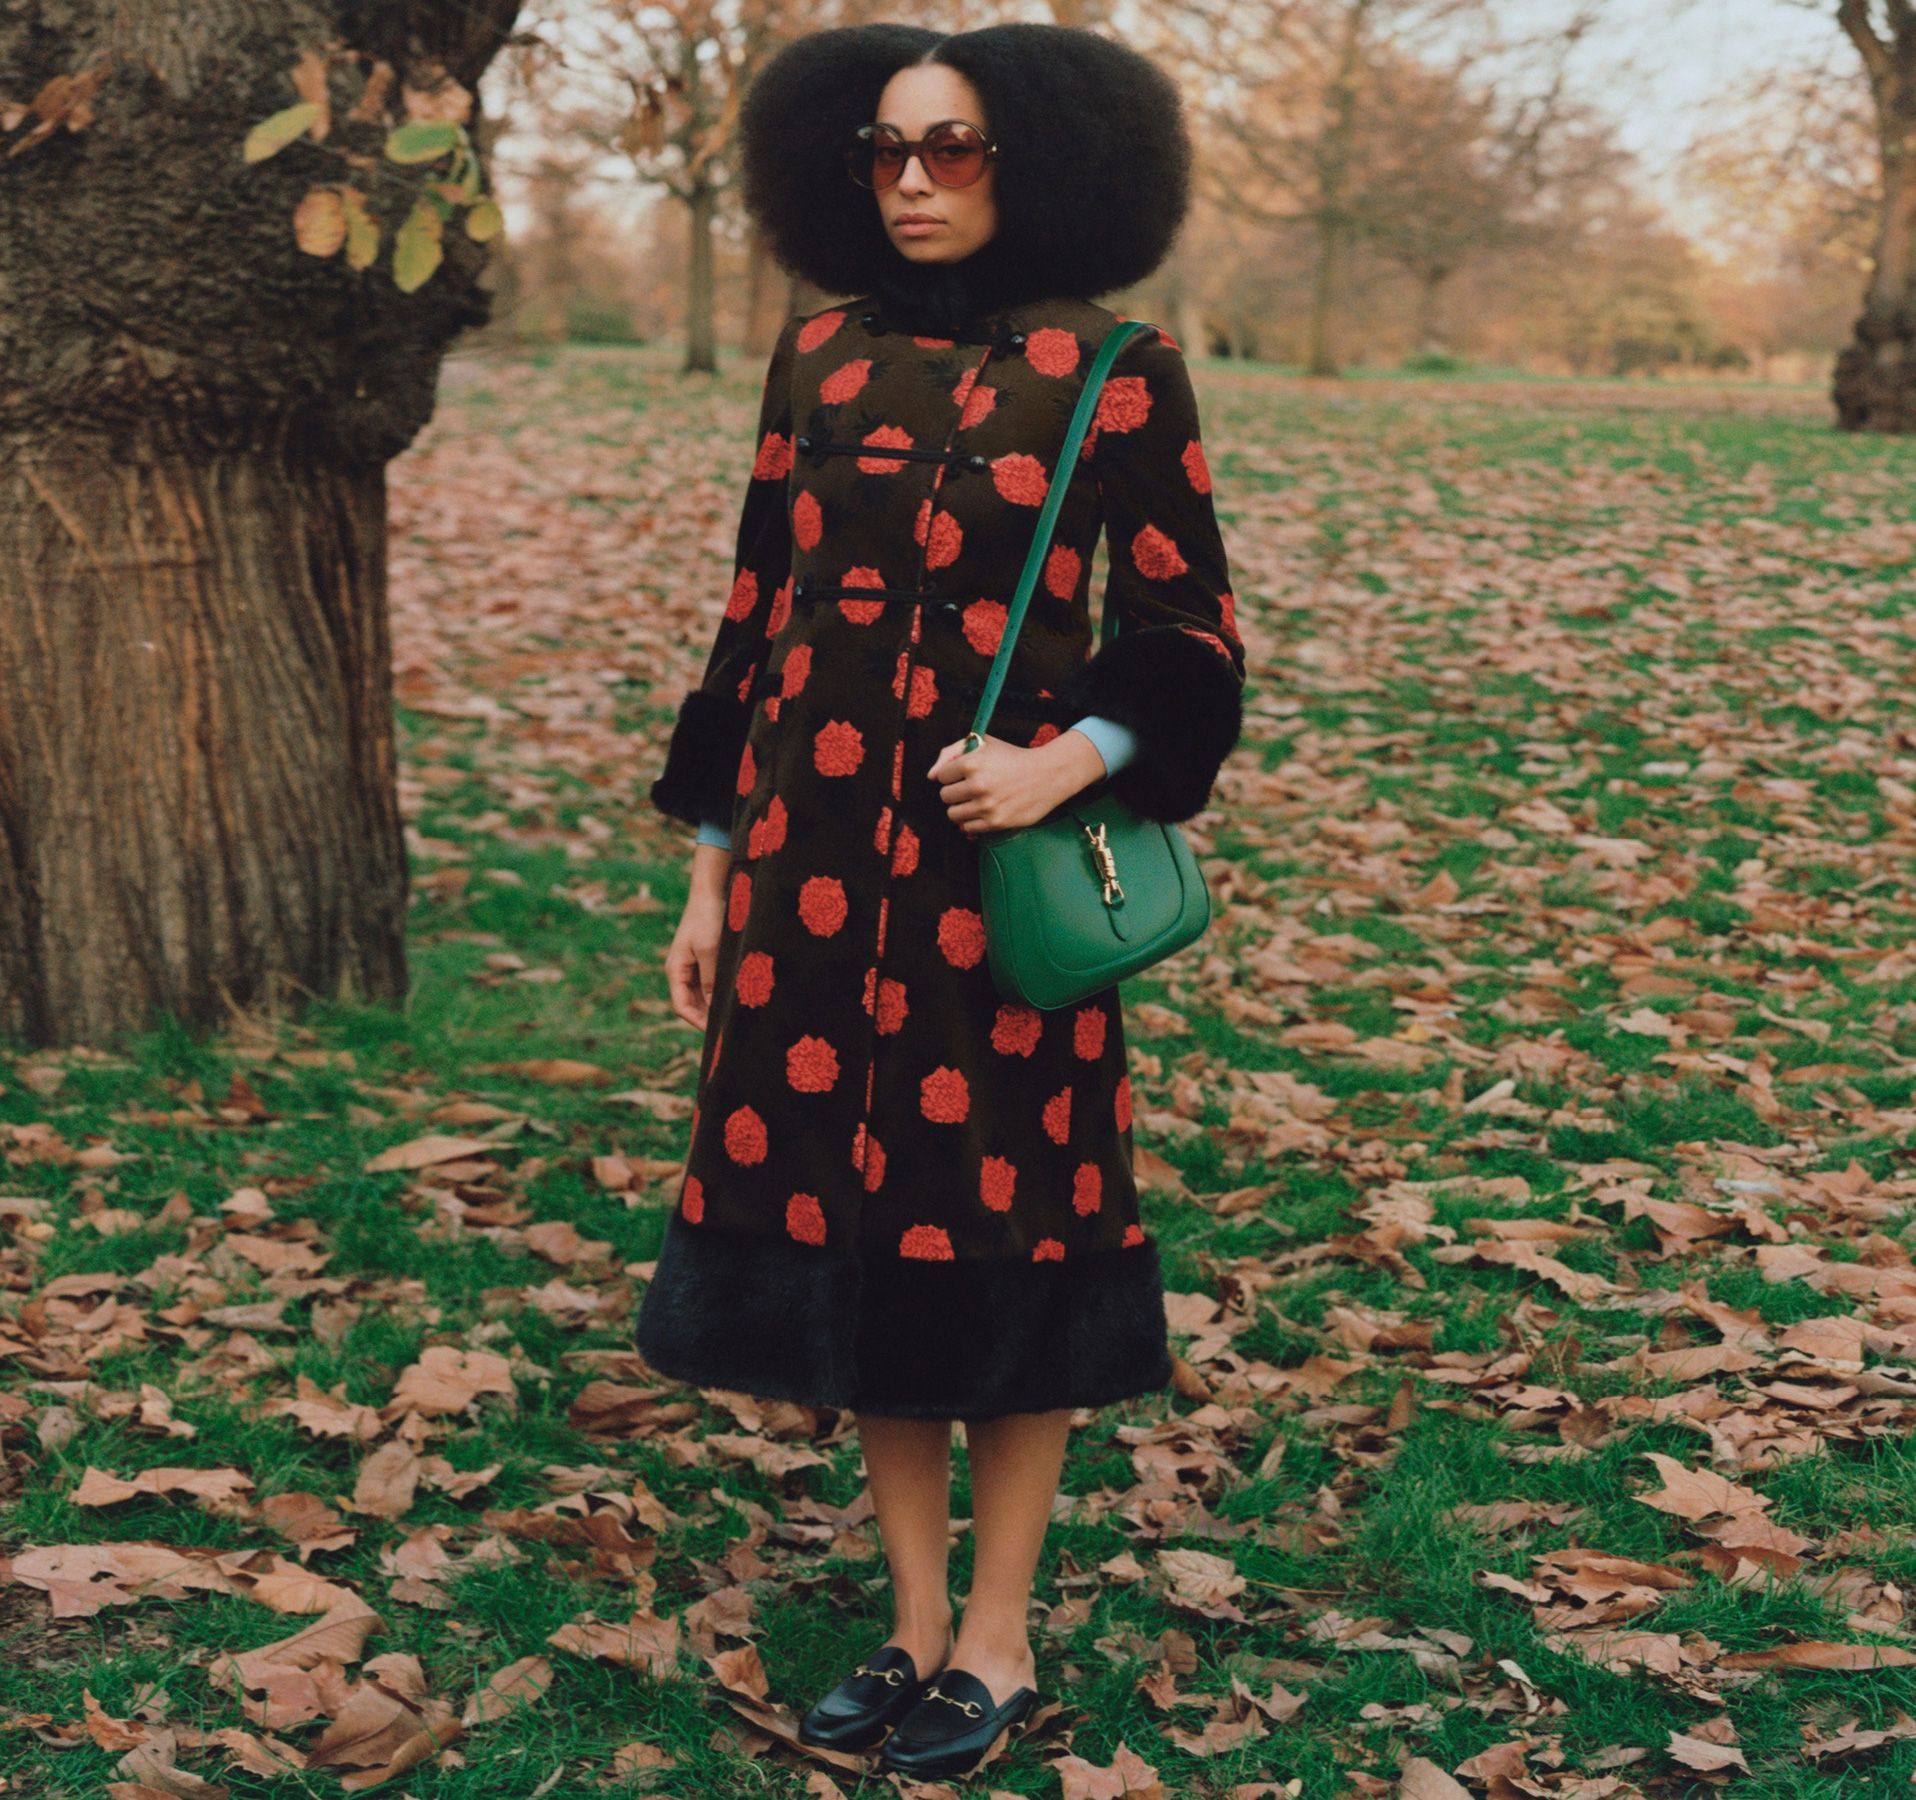 Gucci 'Winter In The Park' Spring 2021 Ad Campaign